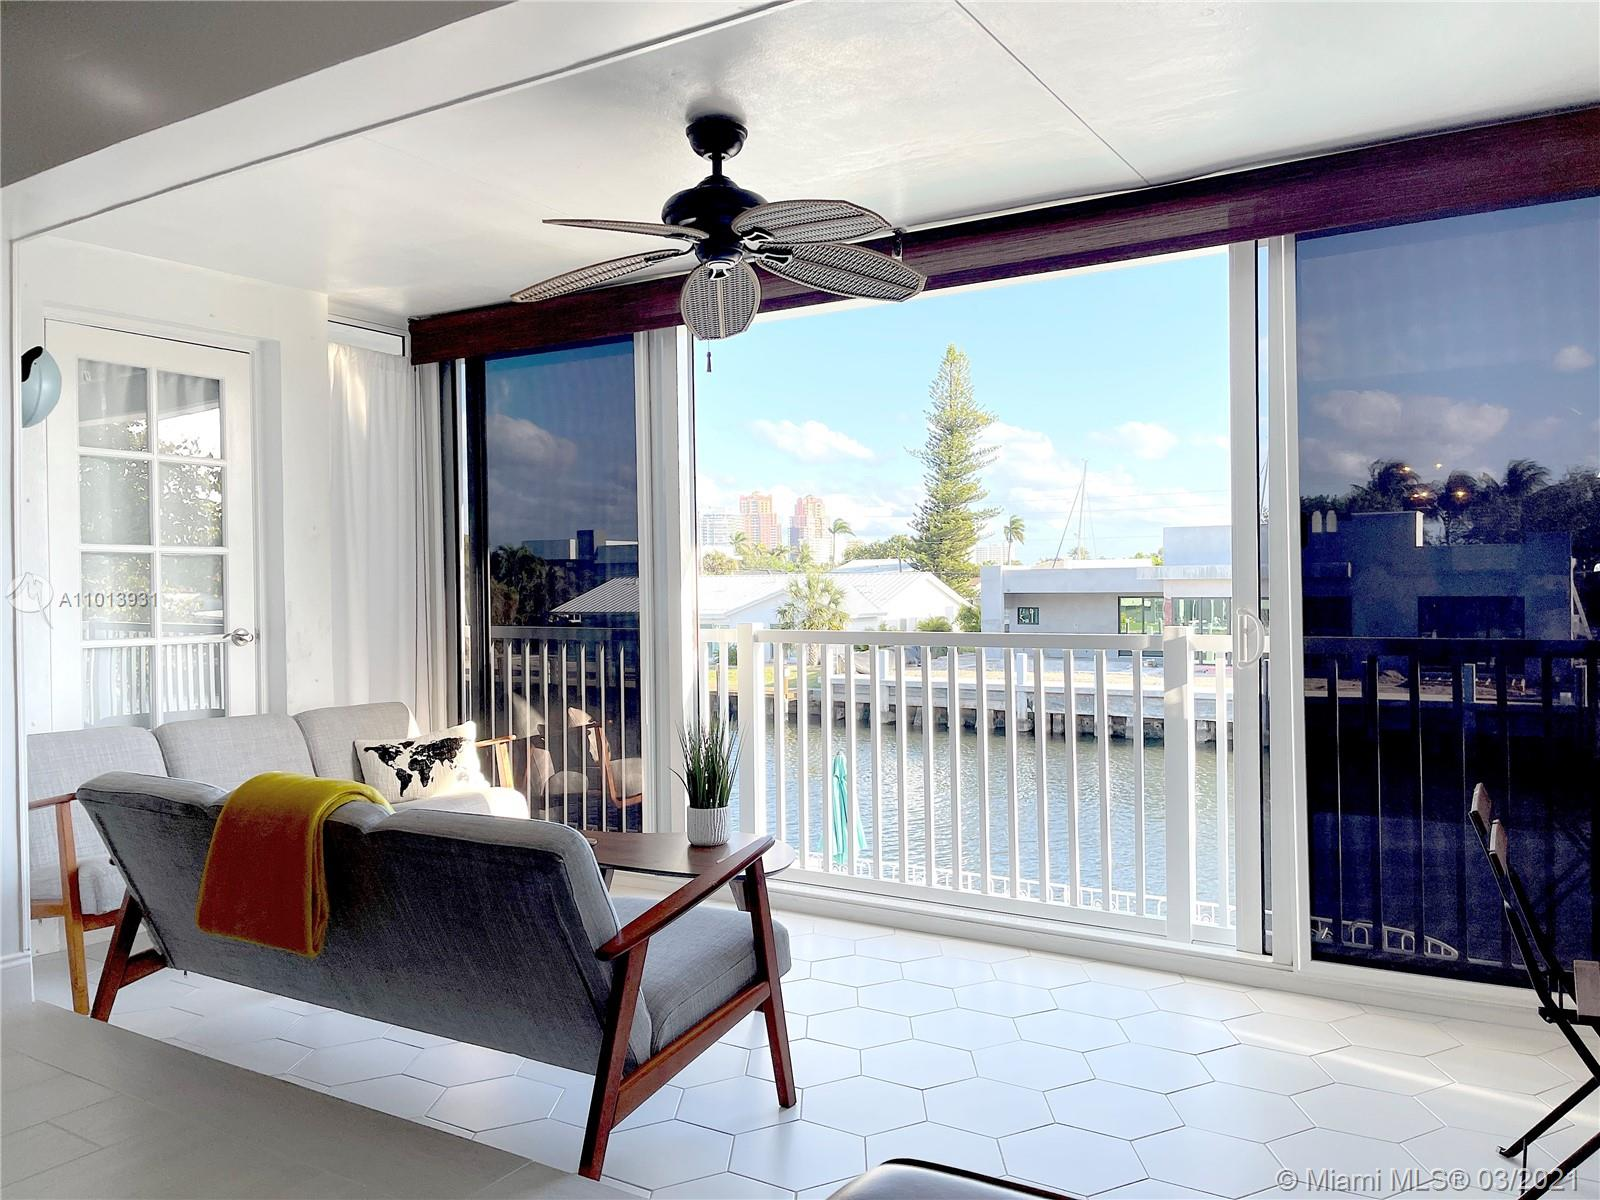 AMAZING WATERFRONT VIEW! RENOVATED and READY TO MOVE IN! This is the only unit in the building with its own Washer and Dryer! This very beautiful unit is now available for purchase. New Floors, New Bathrooms, New Painted Walls, New Custom Bedroom Wall. This modern style unit is overlooking a beautiful waterfront view to the south. Multi million dollar properties across the water. The enclosed balcony has been fully opened to the living room with new impact all glass doors from ceiling to floor. Living room is super spacious and filled with light all day. Master Bedroom also overlooks the water view. New Modern Tile has been installed in the entire unit. Granite countertops in kitchen. All New Renovated Master Bathroom with Modern Style! (Real SQFT 1100)